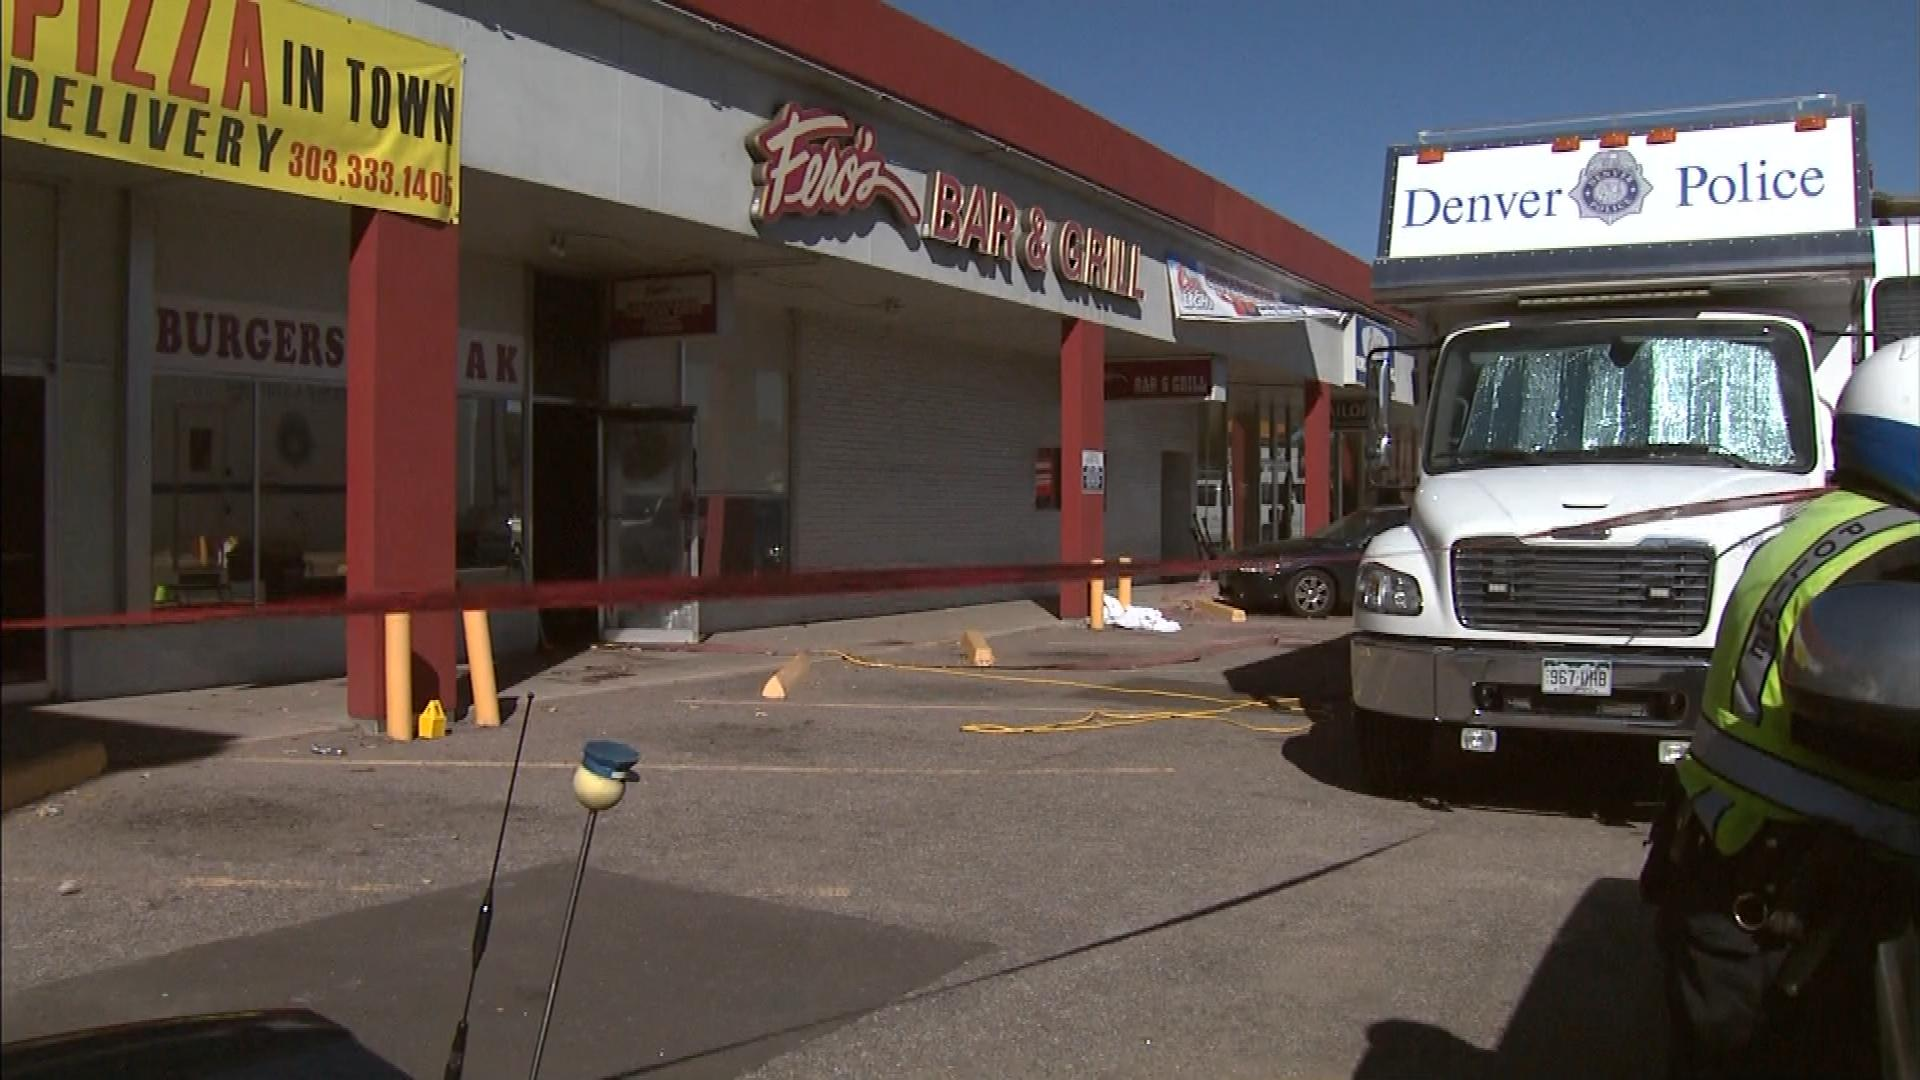 Fero's Bar and Grill after the stabbings (credit: CBS)